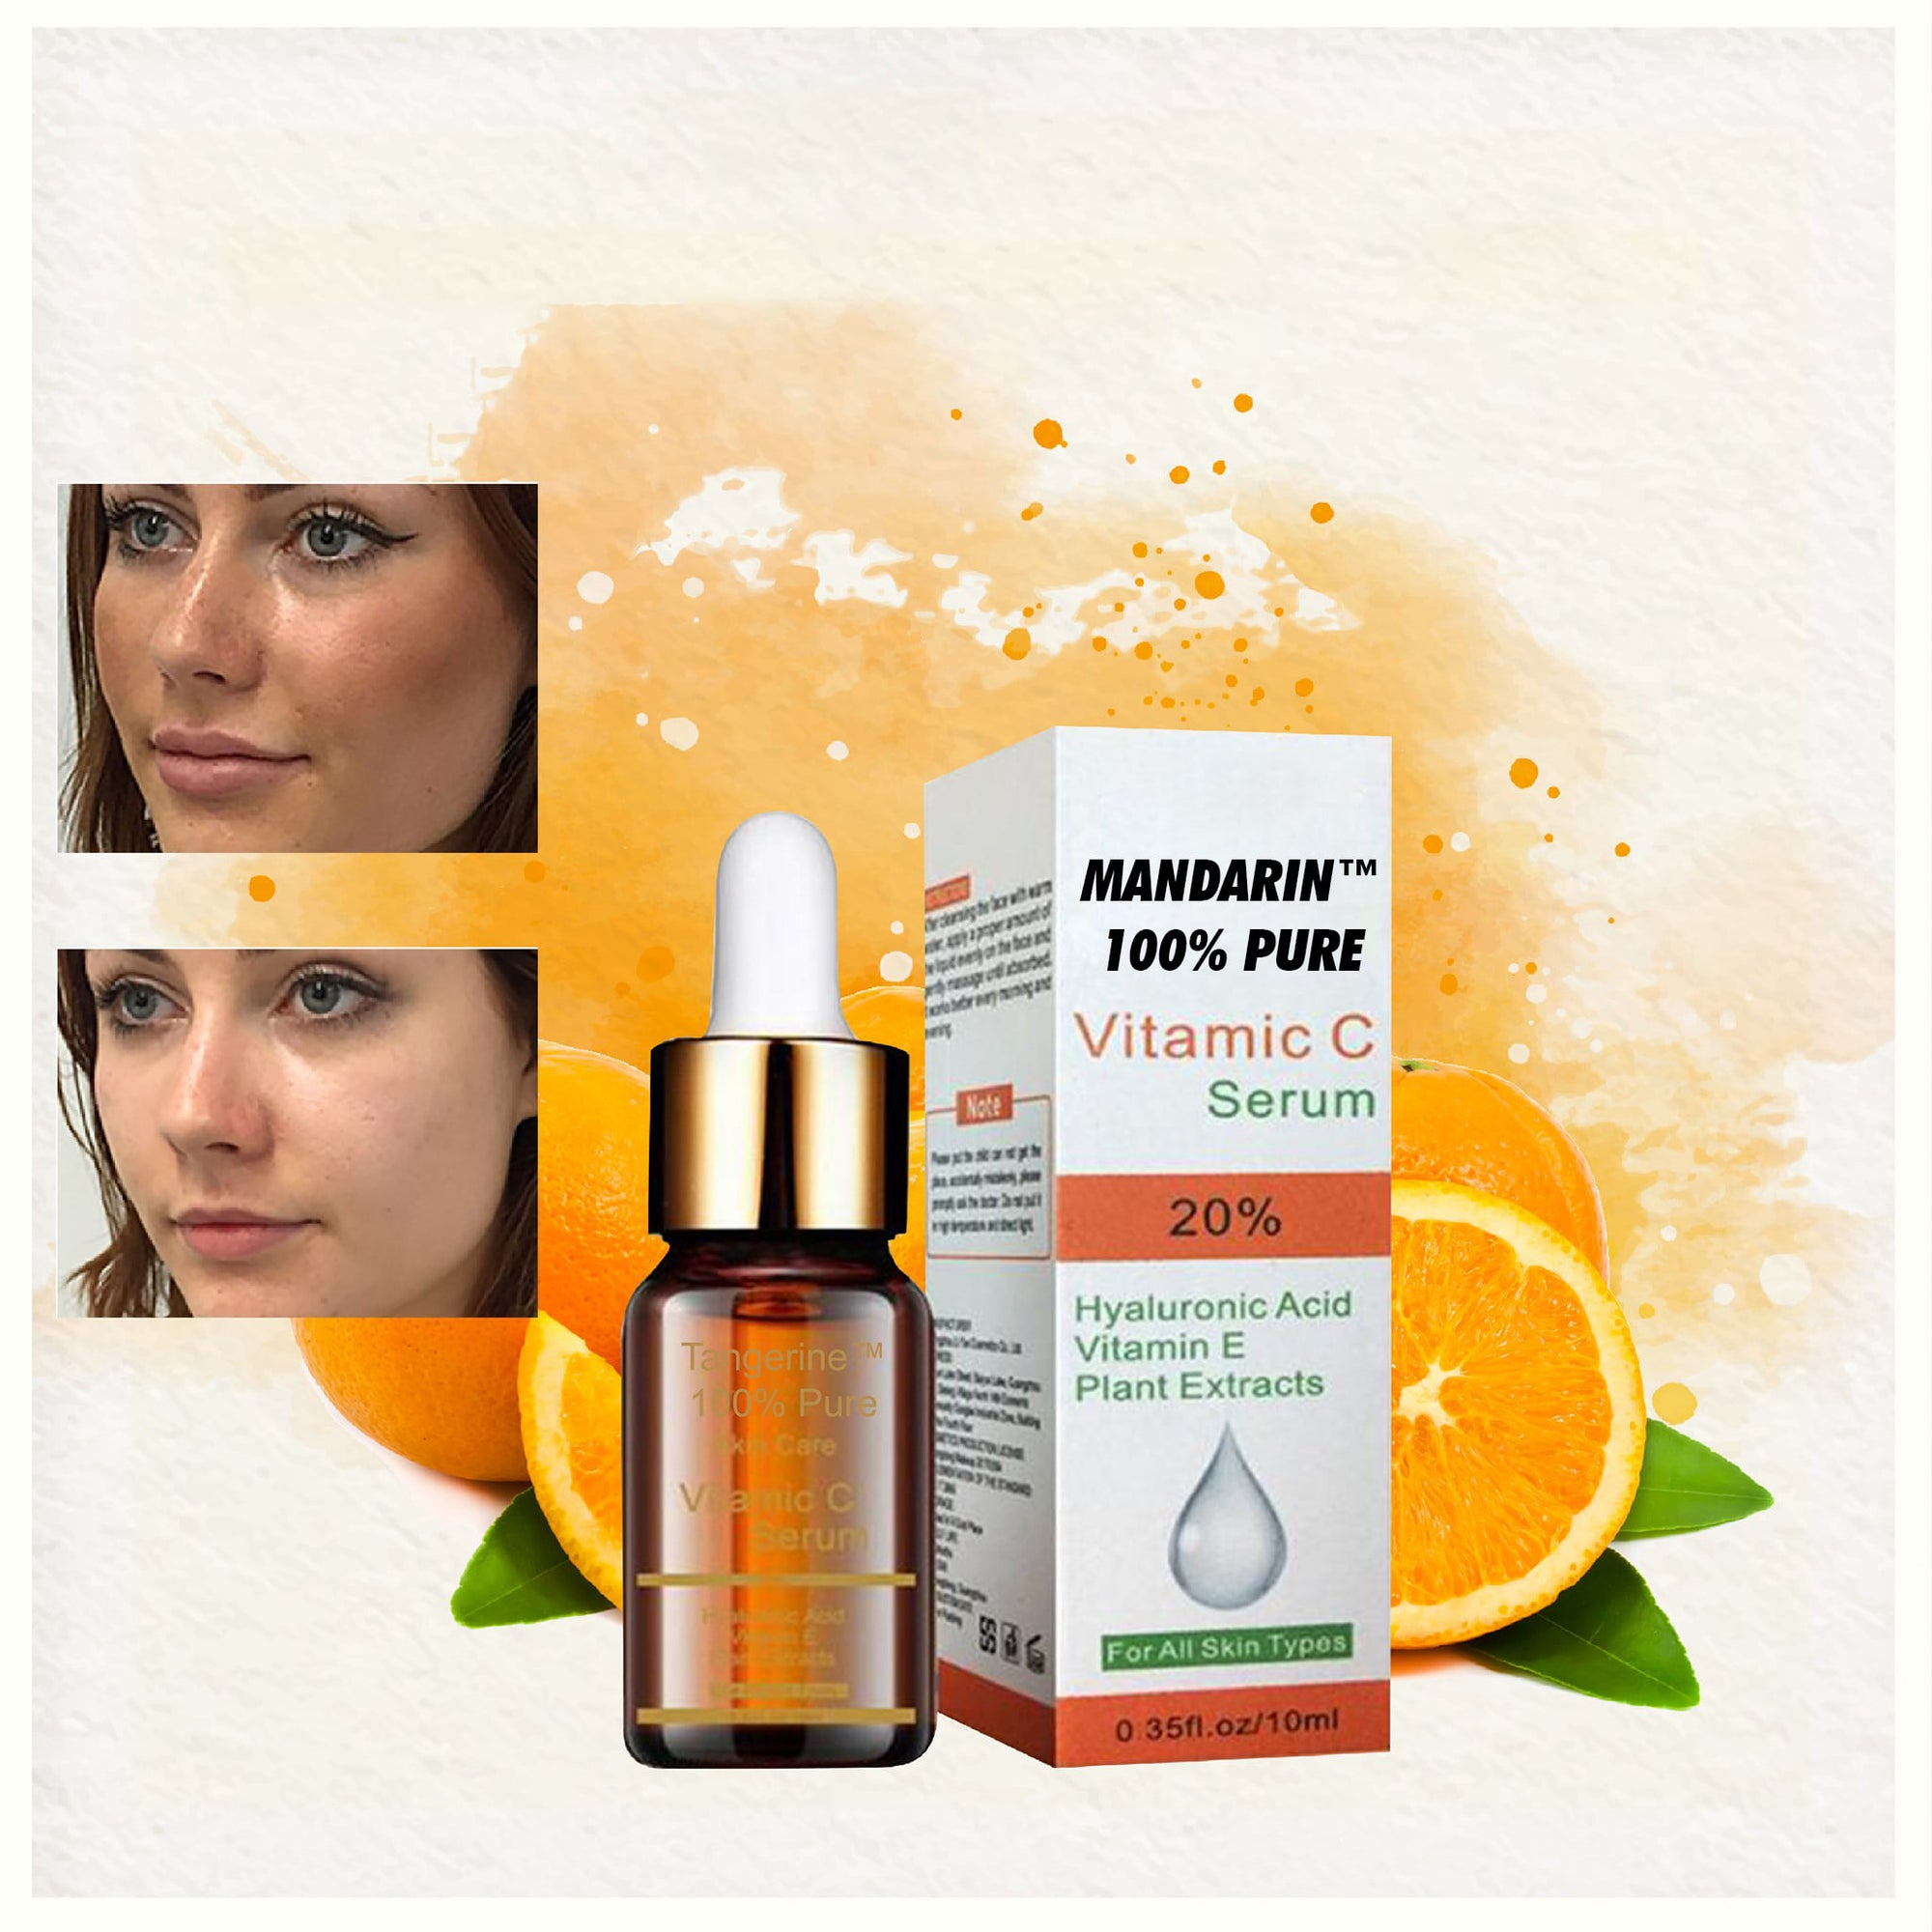 Mandarin™ 100% Pure Vitamin C Serum